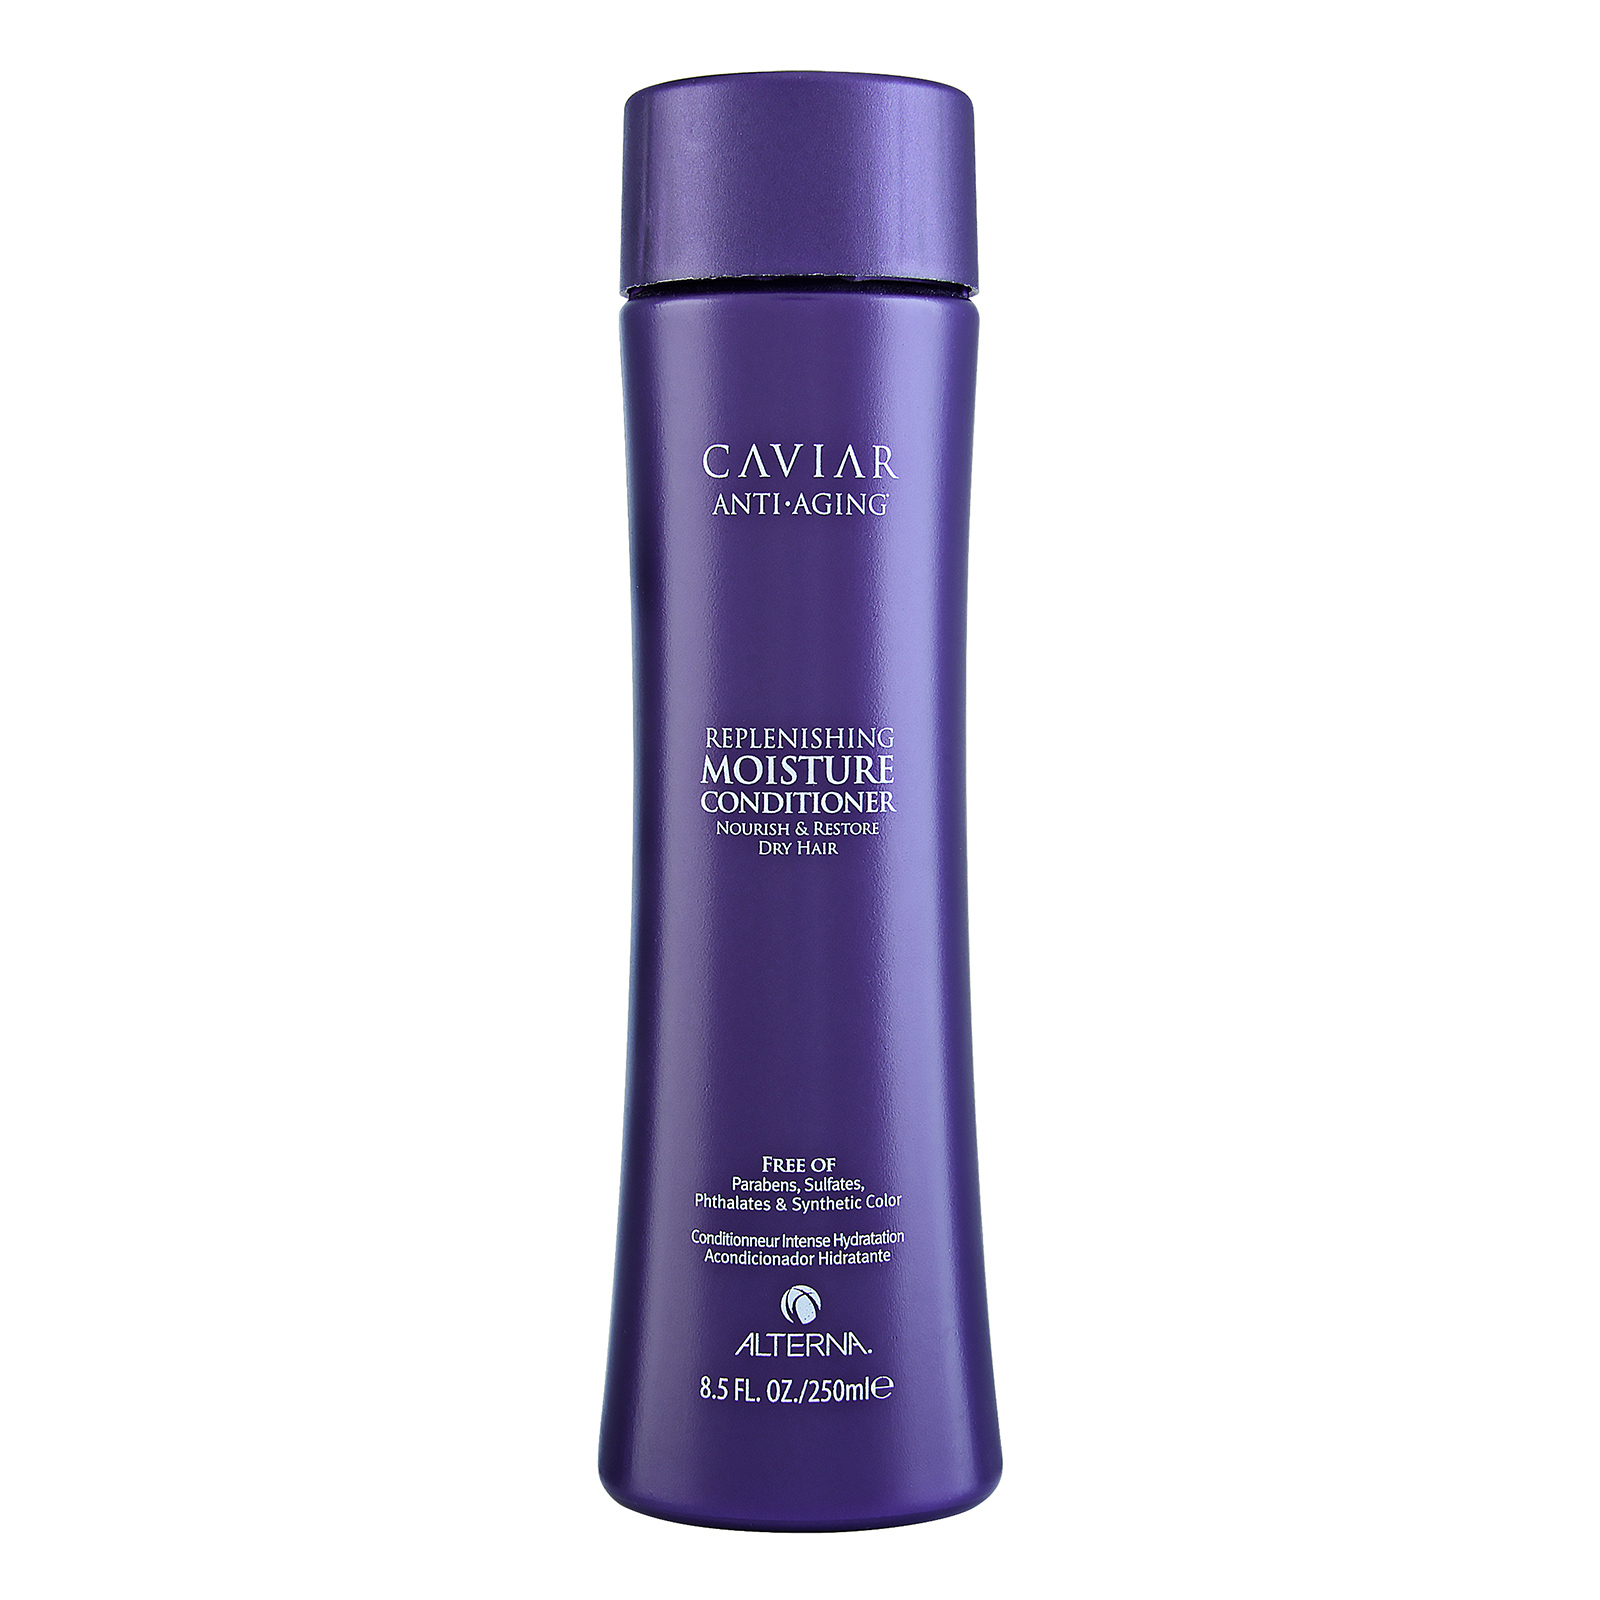 Alterna Haircare Caviar  Anti-Aging Replenishing Moisture Conditioner (Dry Hair) 8.5oz, 250ml